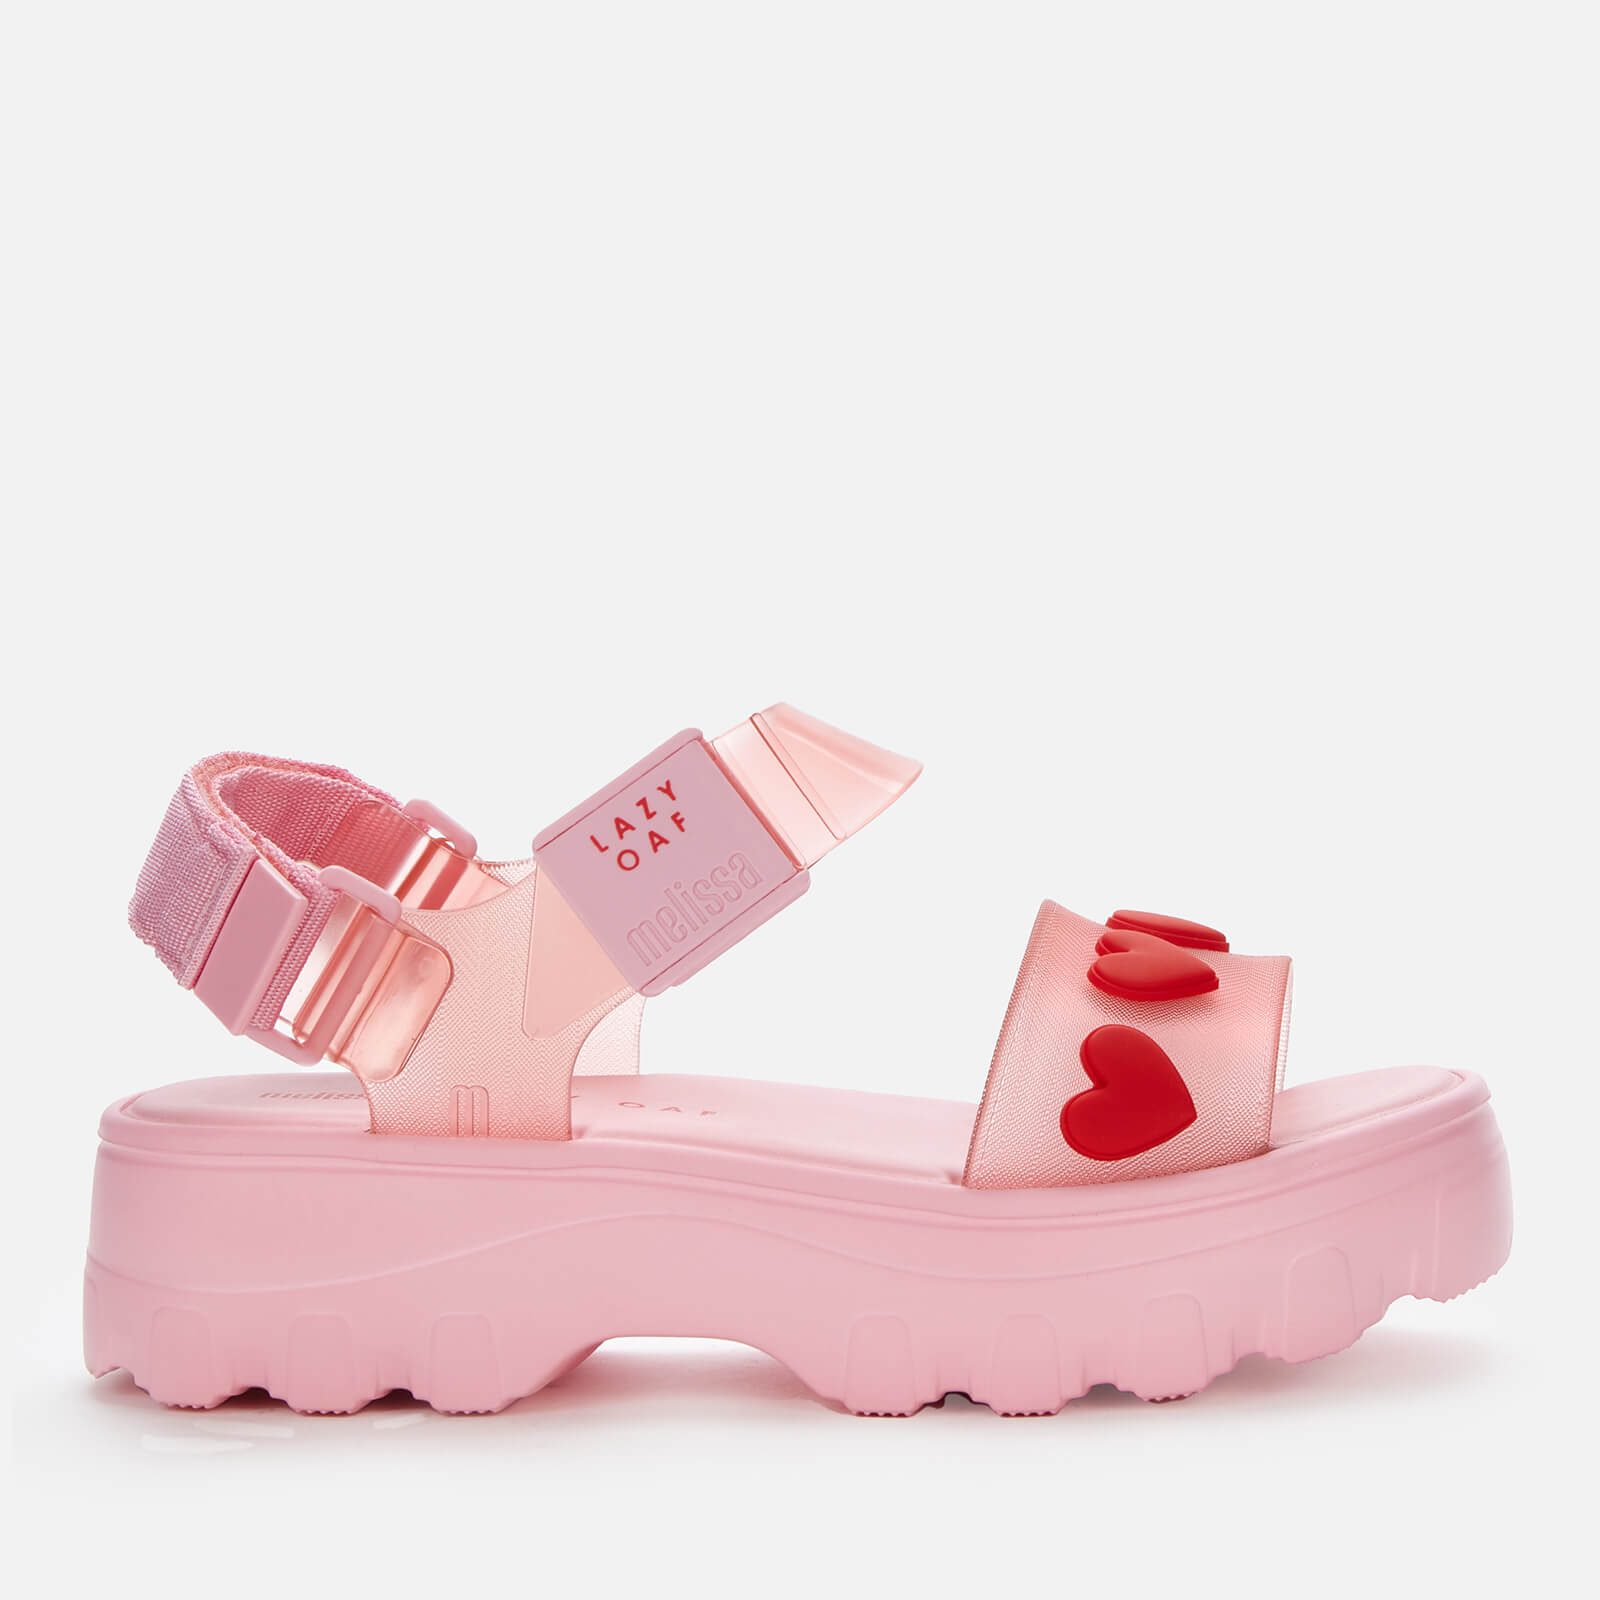 Melissa X Lazy Oaf Womens Kick Off Sandals Pink Heart Uk 5